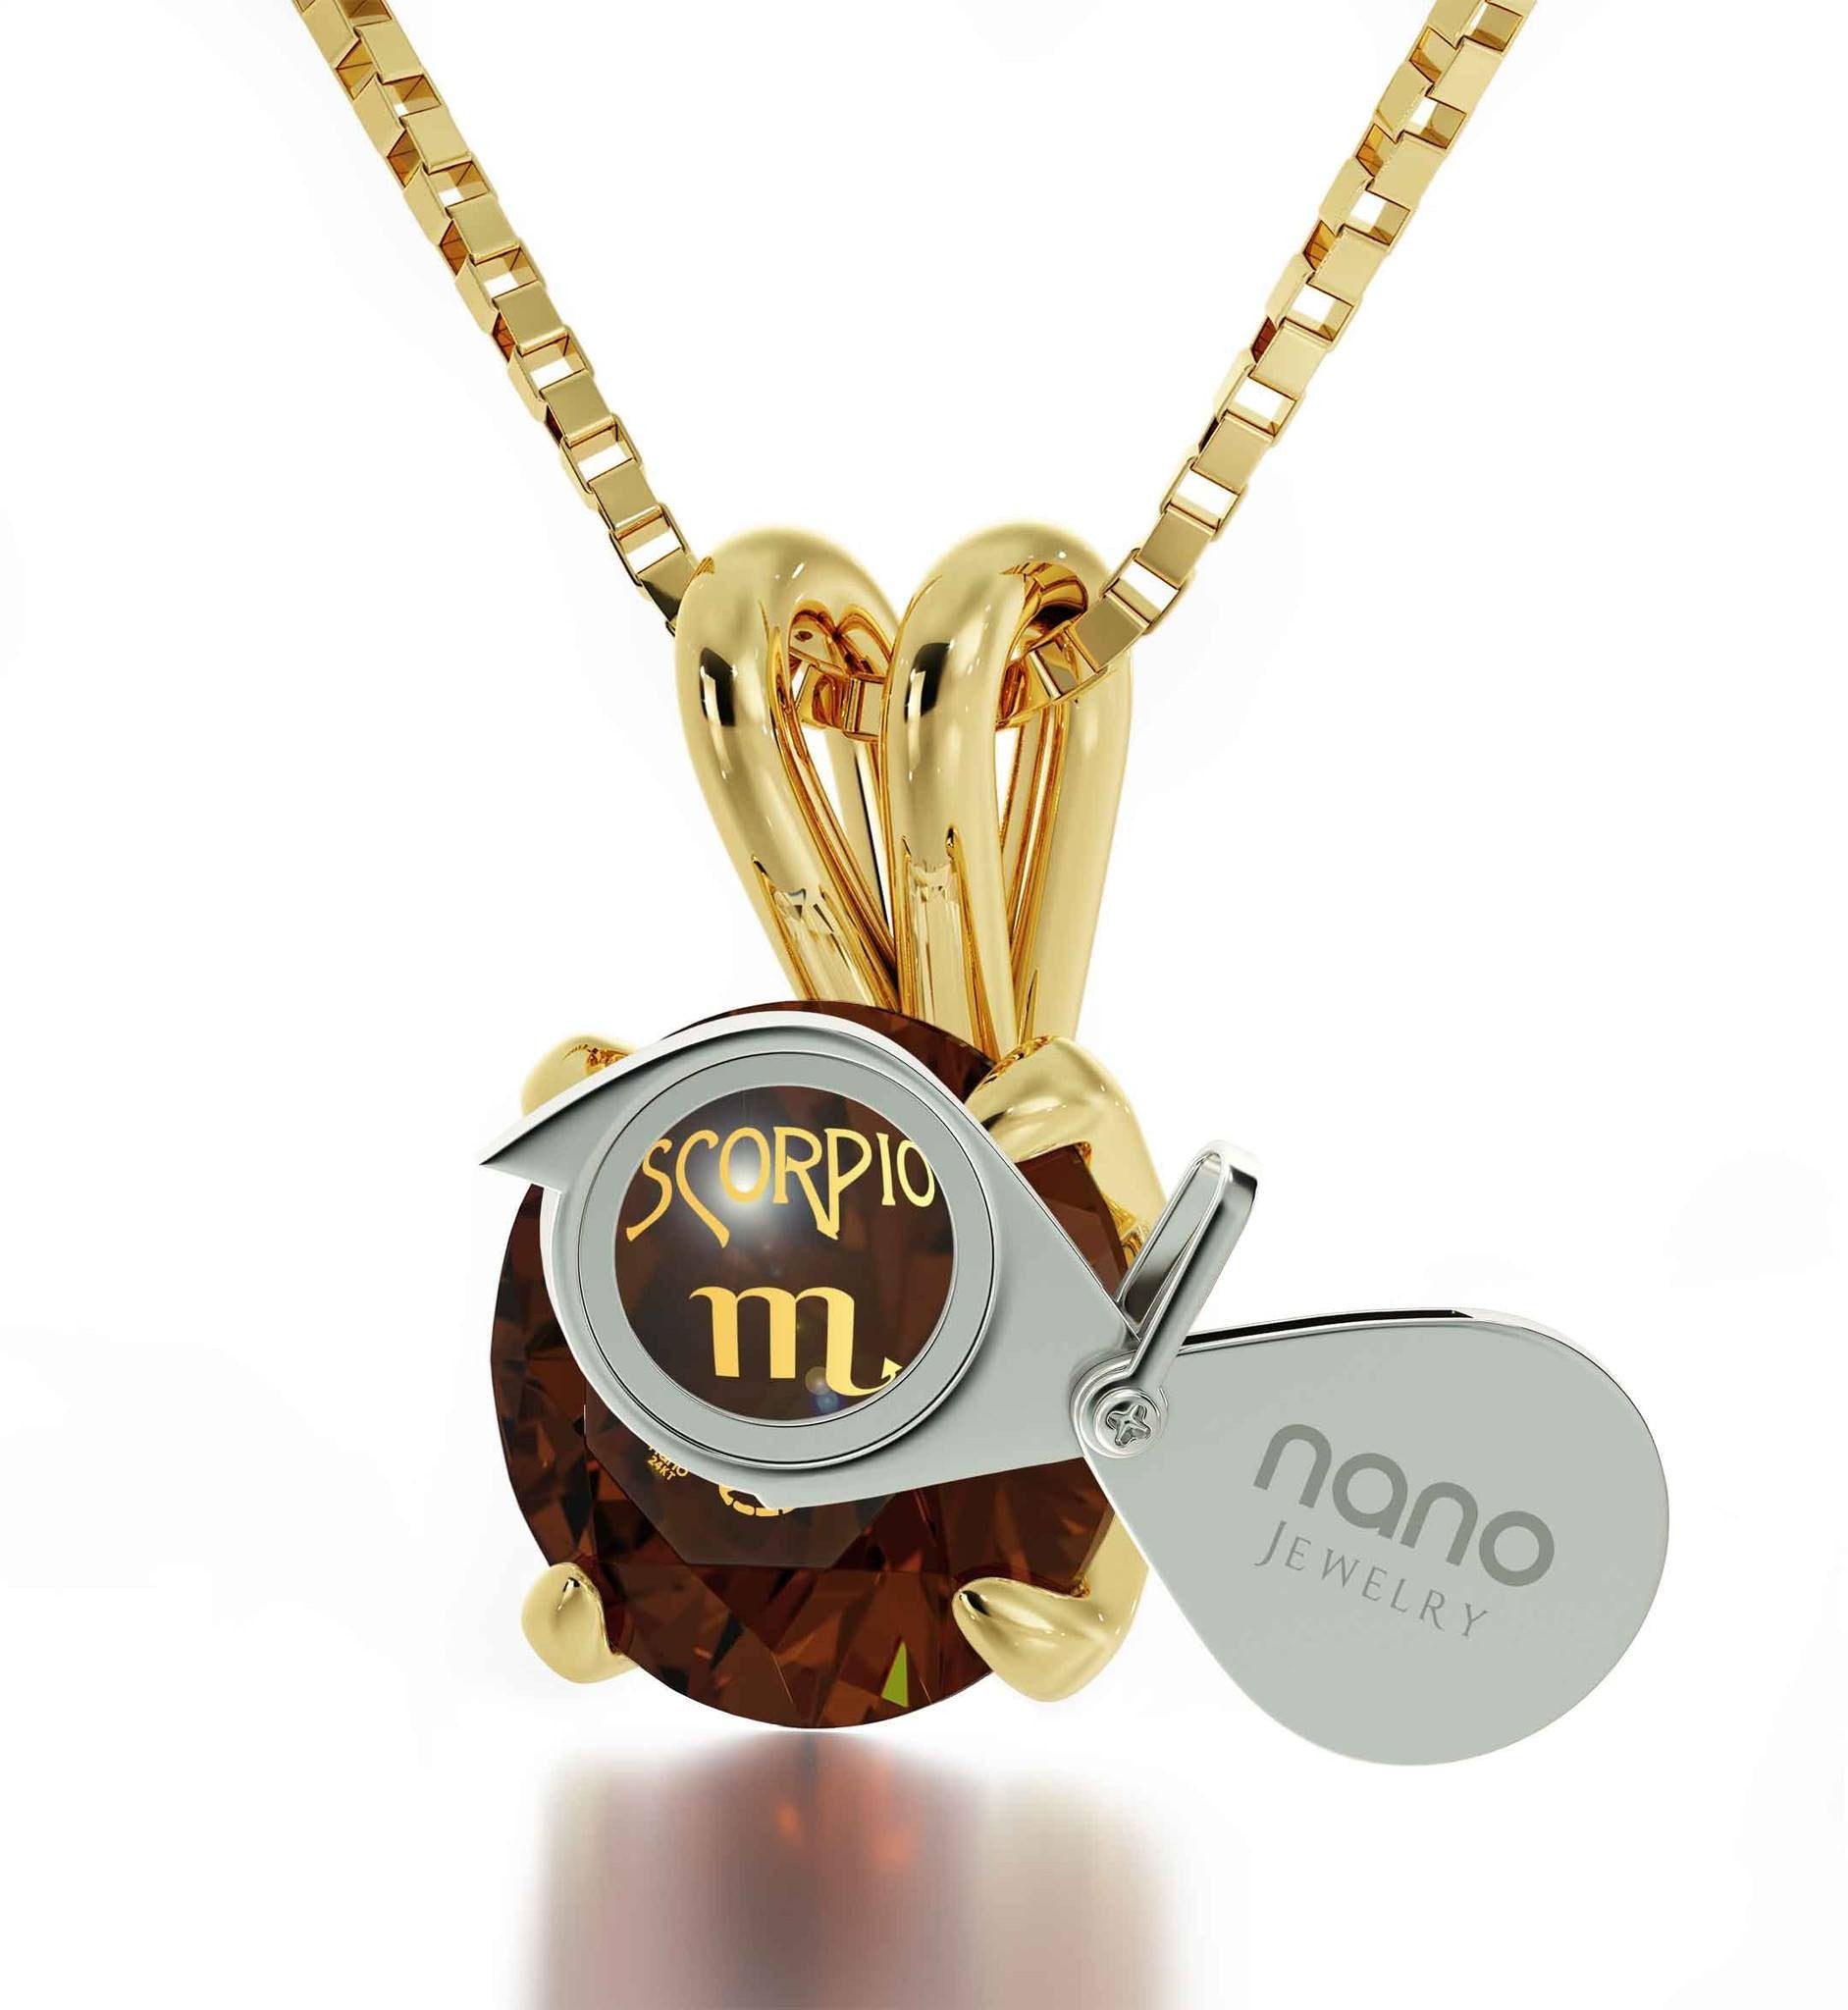 """Christmas Presents for Your Best Friend, Brown Stone Scorpio Necklace, Birthstone Jewelry for Mom, by Nano """